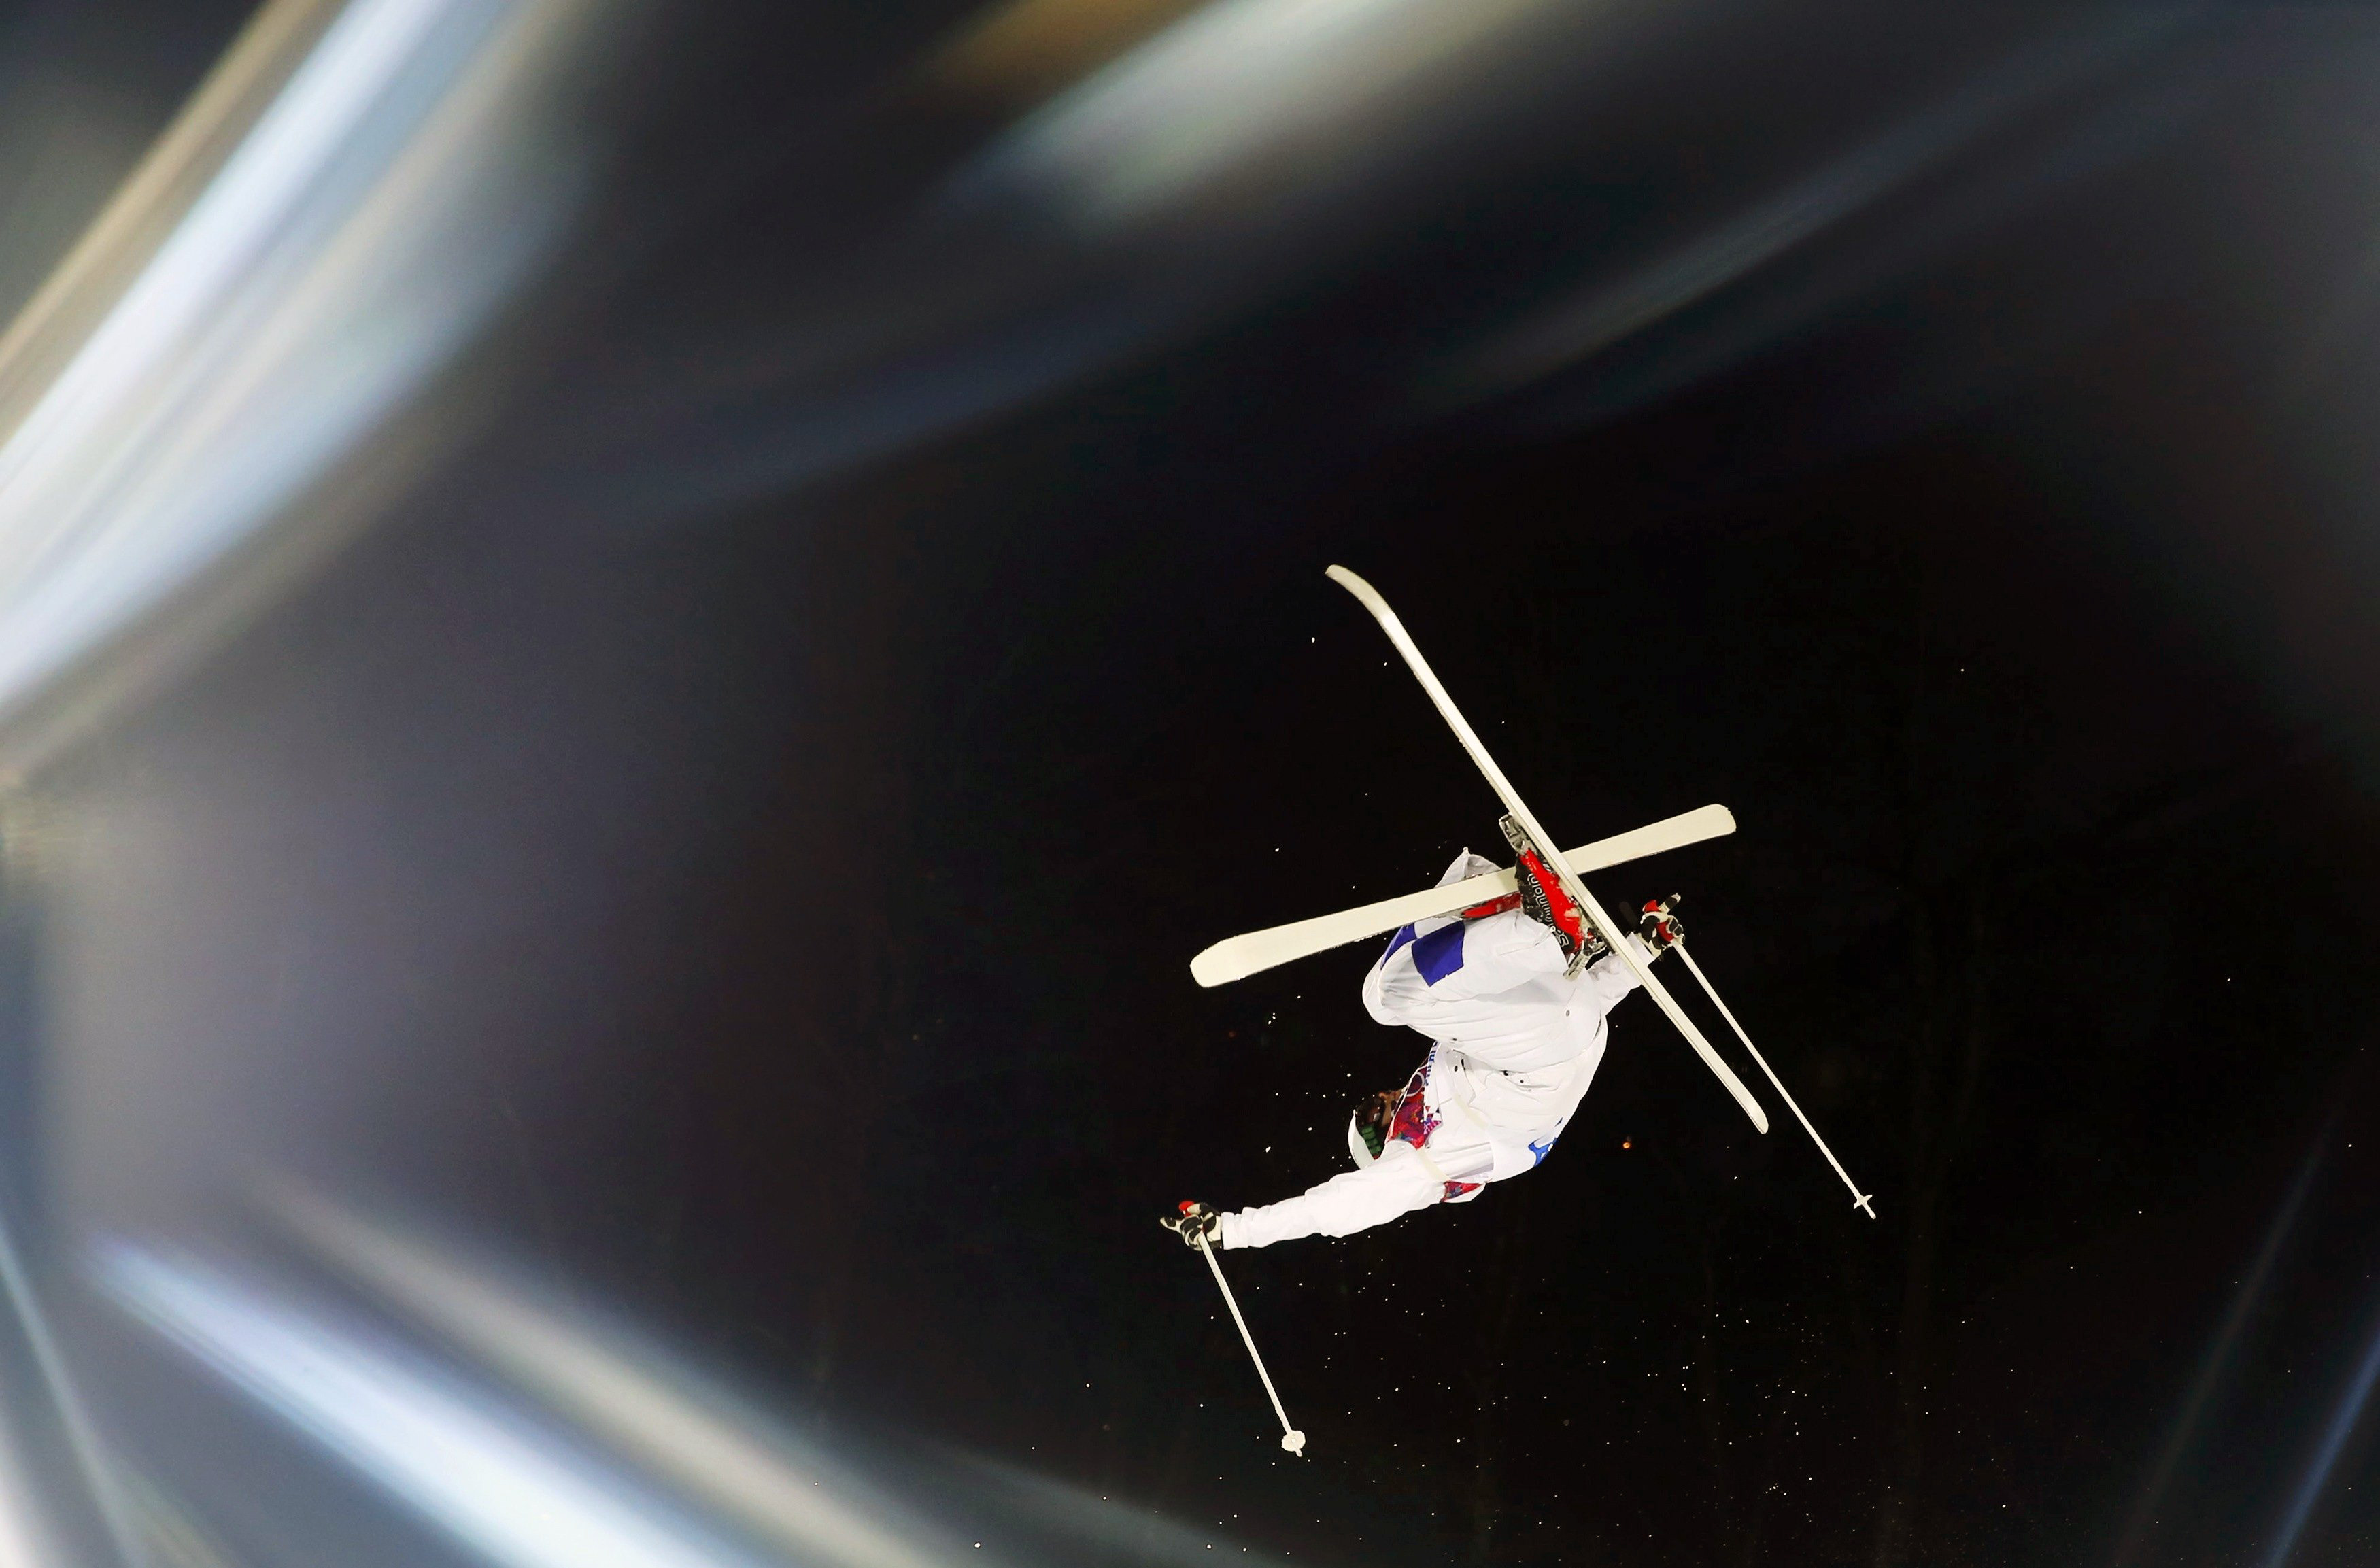 Finland's Arttu Kiramo performs a jump during the men's freestyle skiing moguls qualification round.